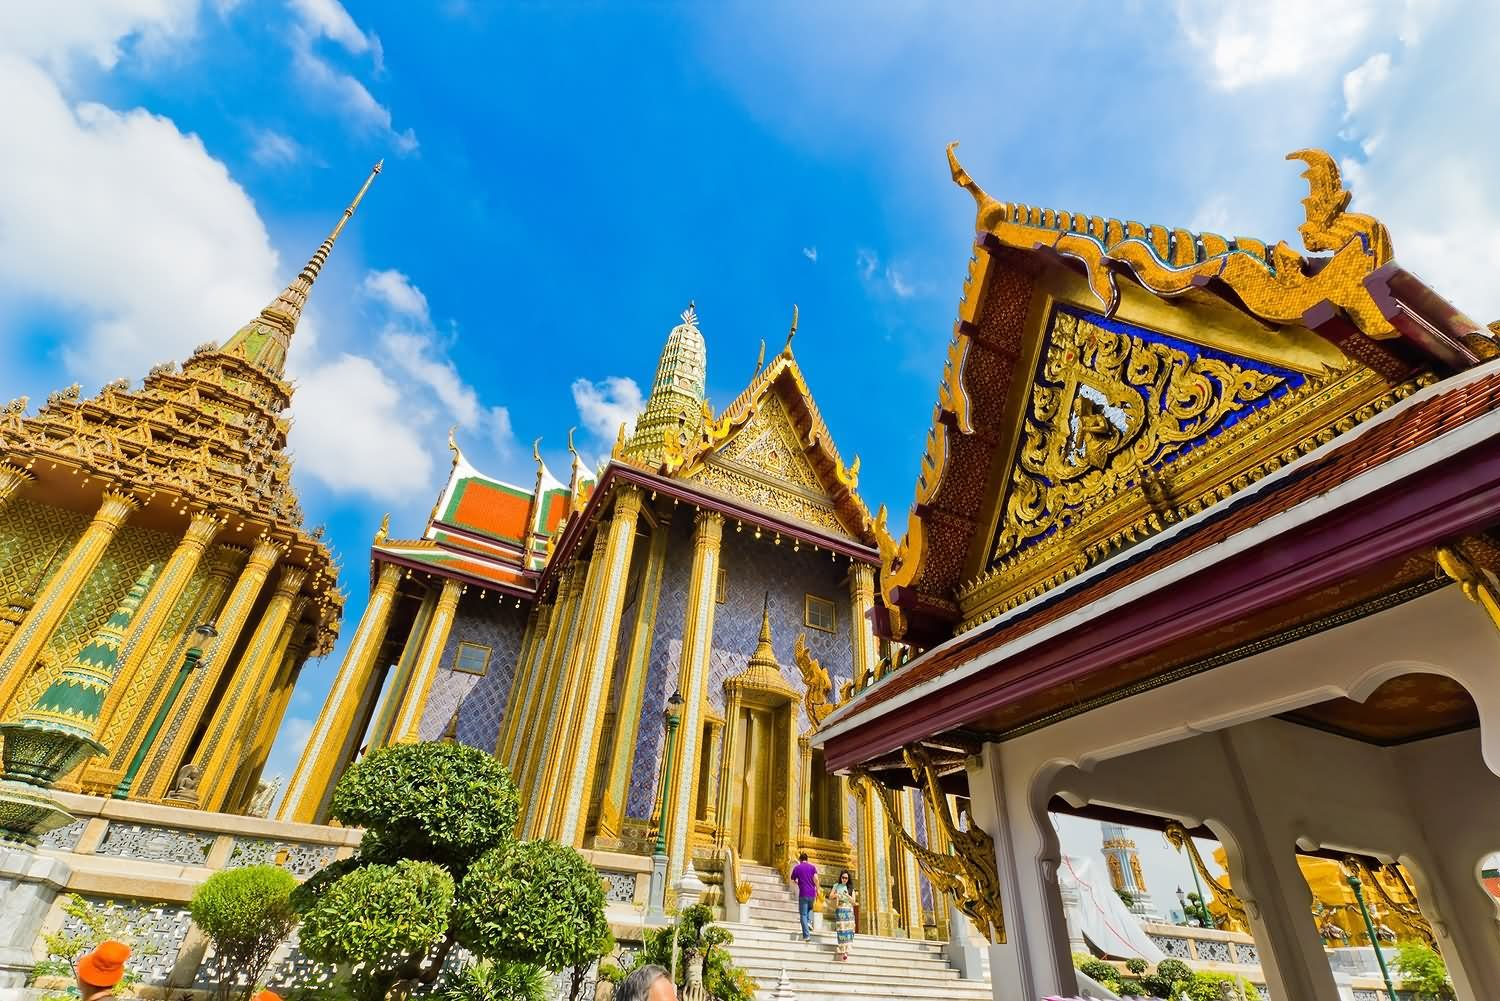 Beautiful-Architectural-Work-In-Grand-Palace.jpg